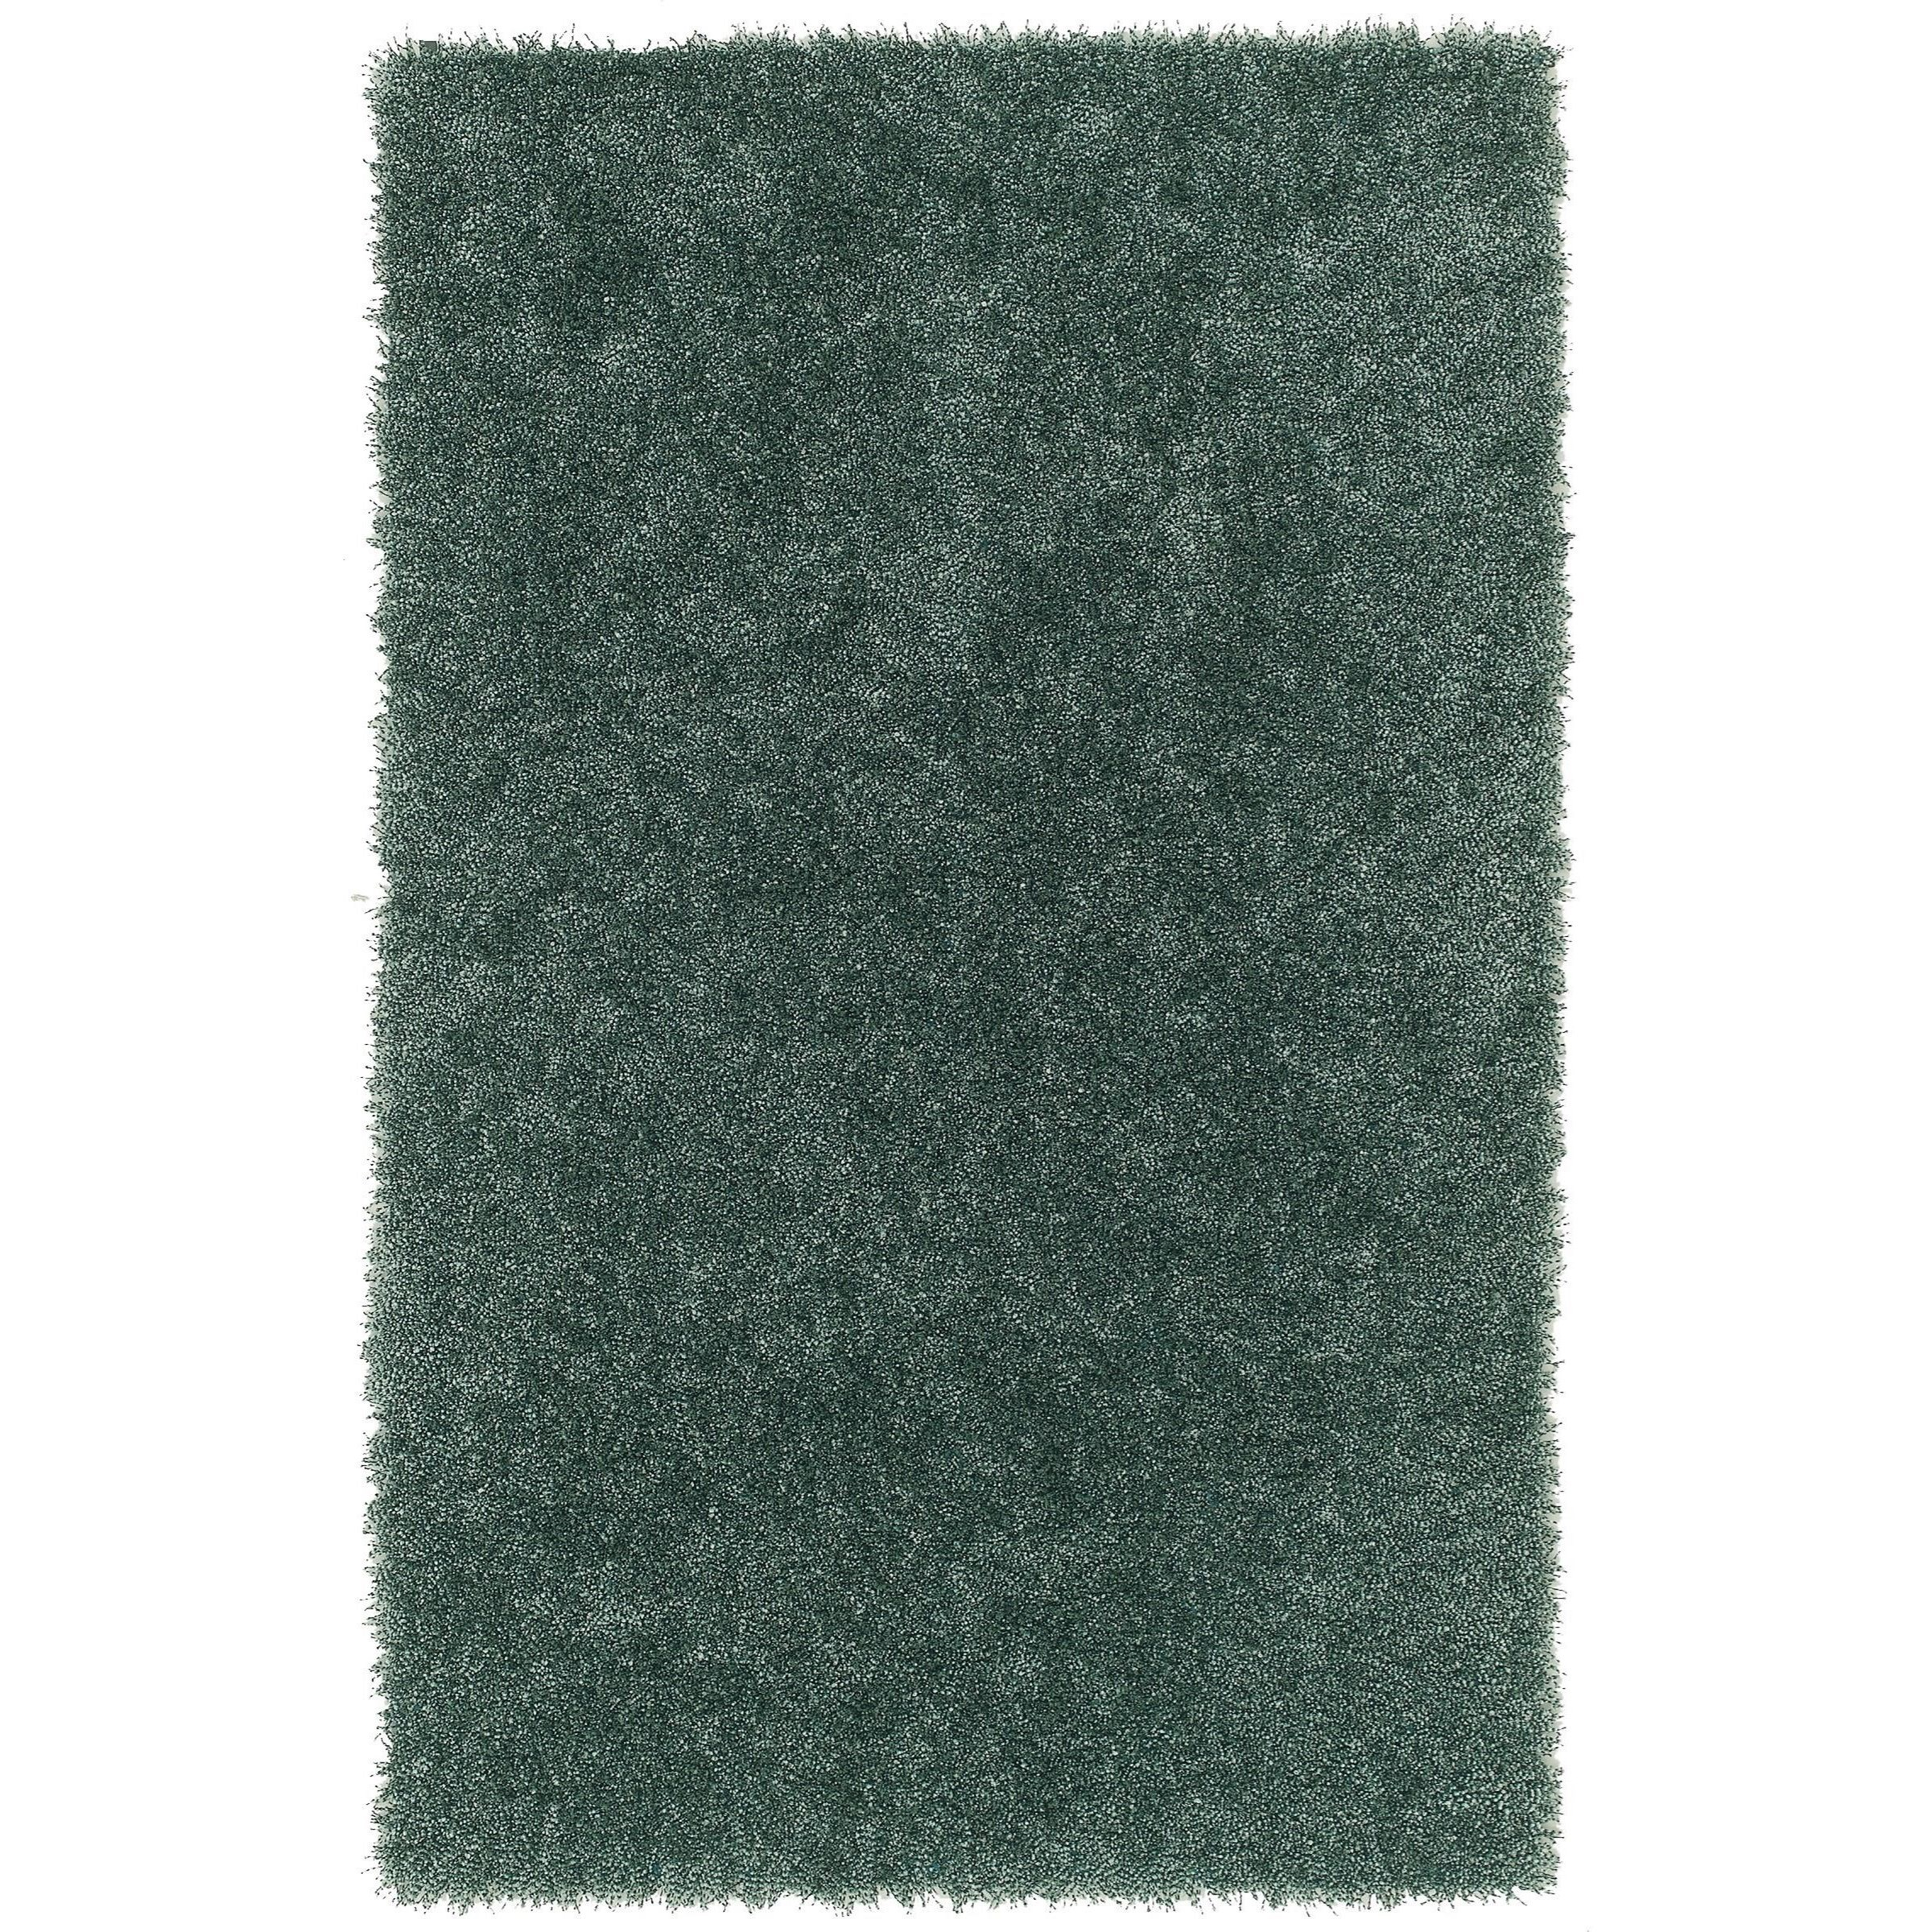 Dalyn Belize Spa 8'X10' Rug - Item Number: BZ100SP8X10